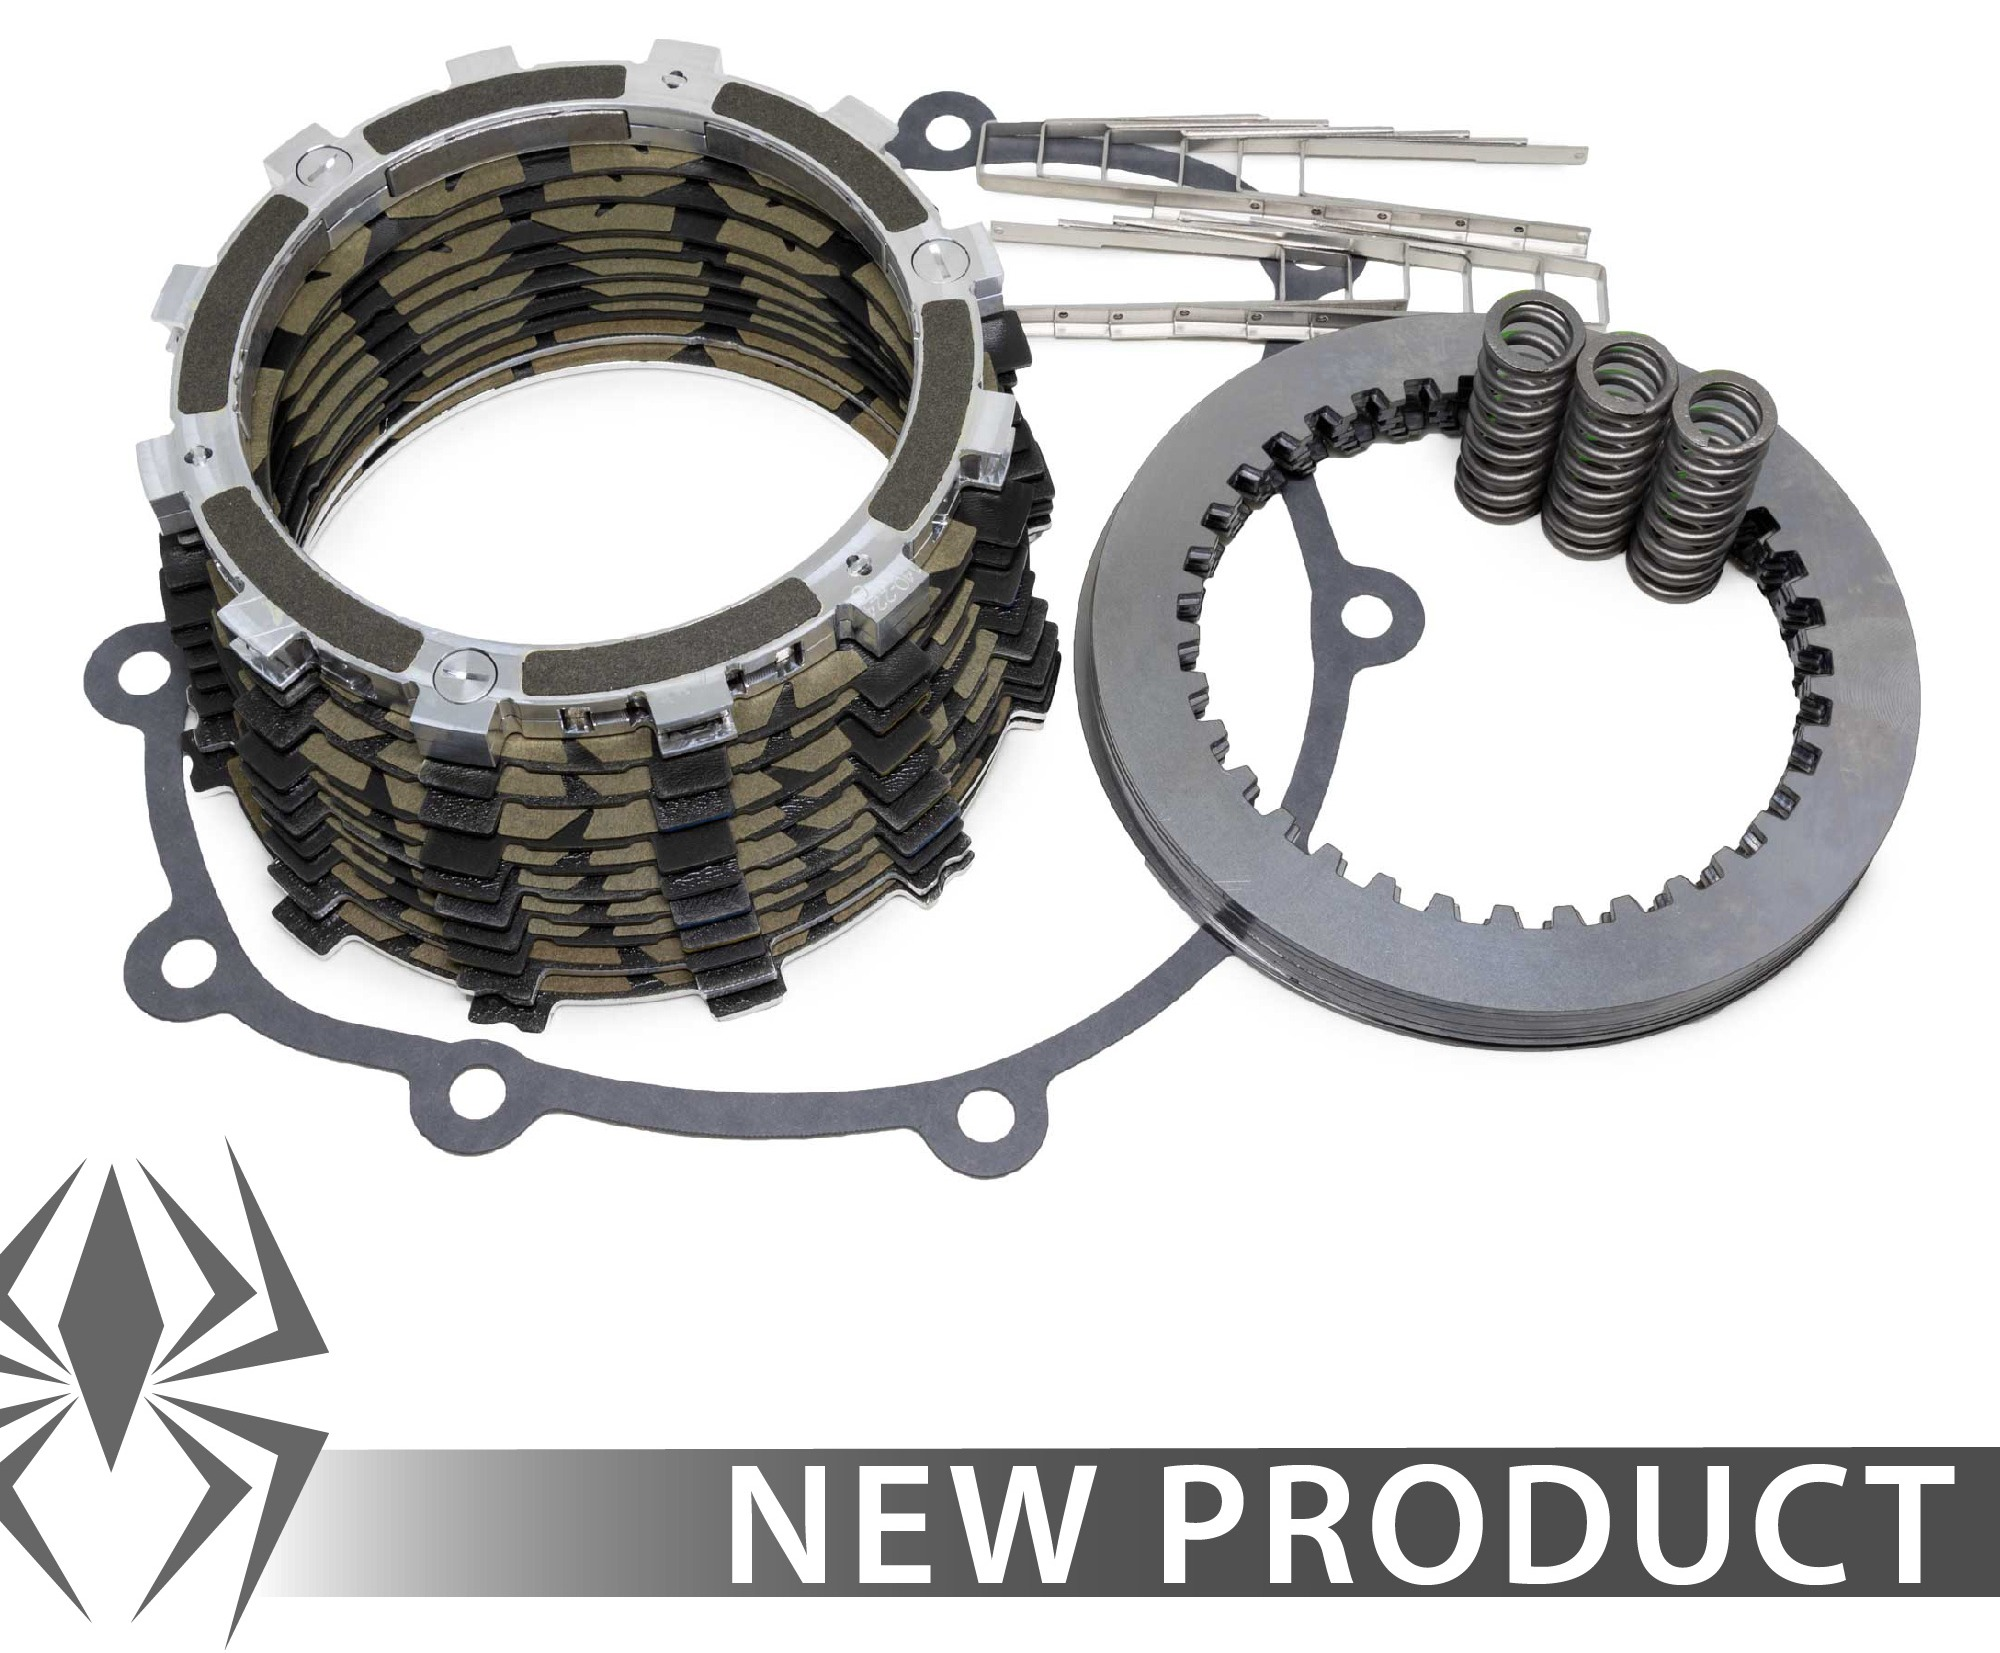 BMW F750/850 and R1200/1250 Product Now Available